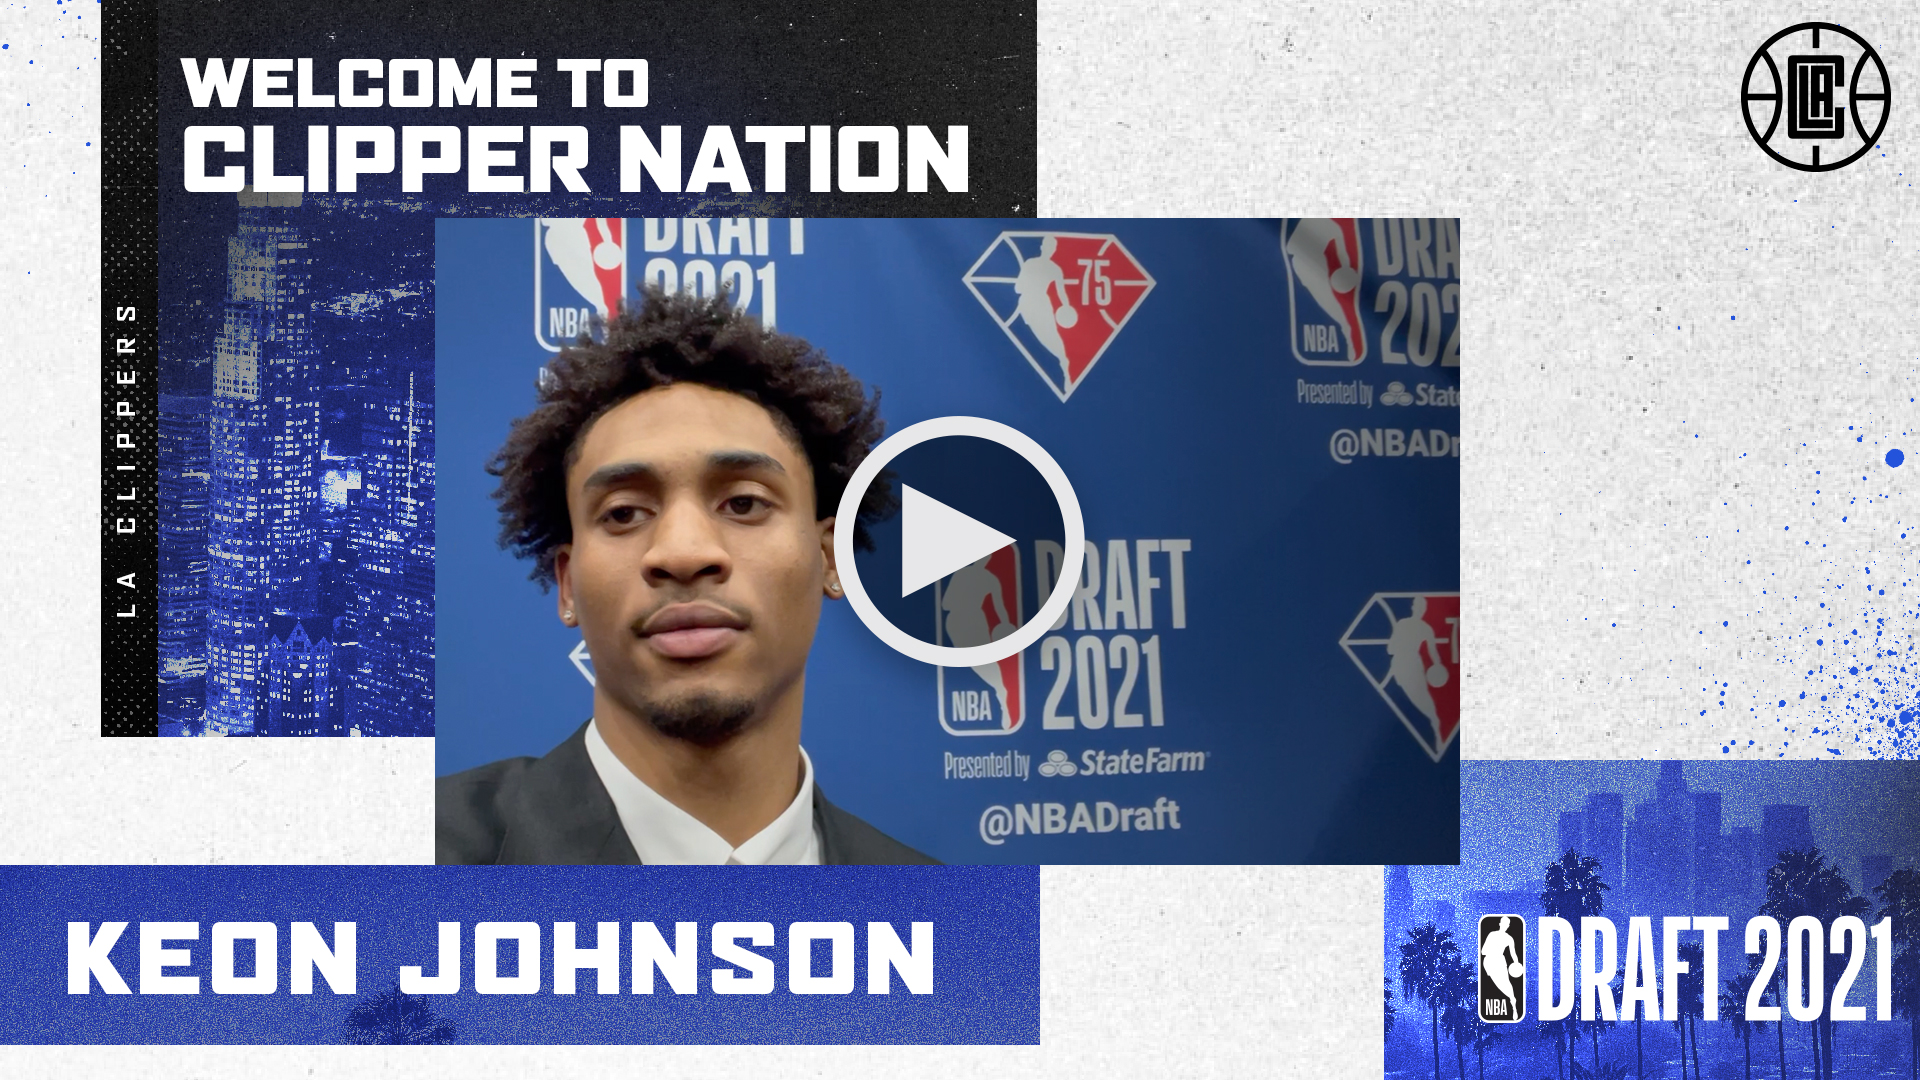 Welcome to Clipper Nation, Keon